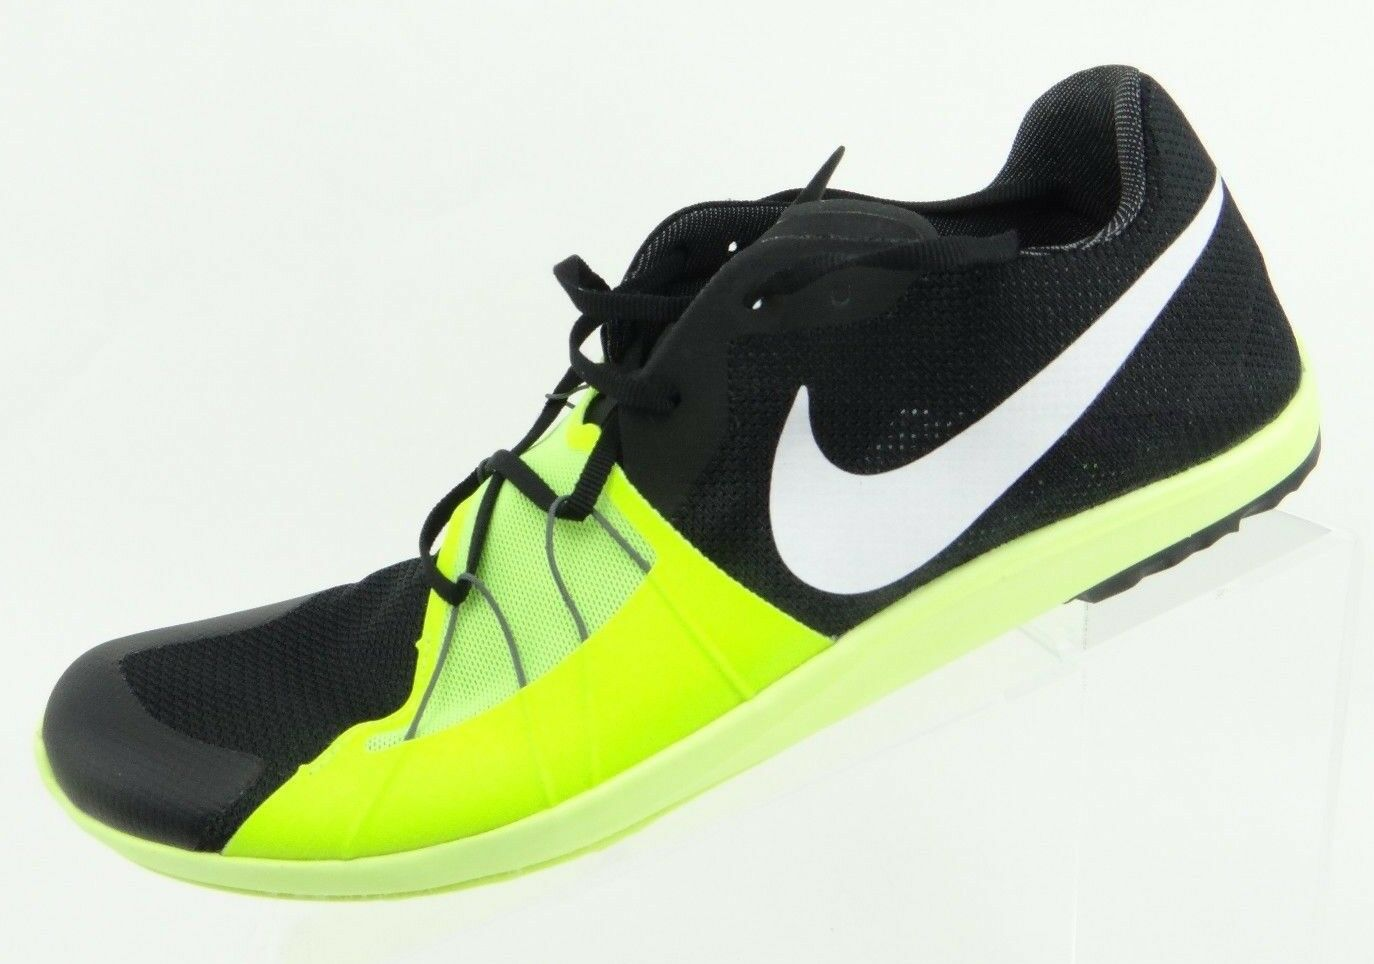 Nike Zoom Forever XC 5 Men's Size 10.5 Track Spikes Shoes Black Volt 904723 017